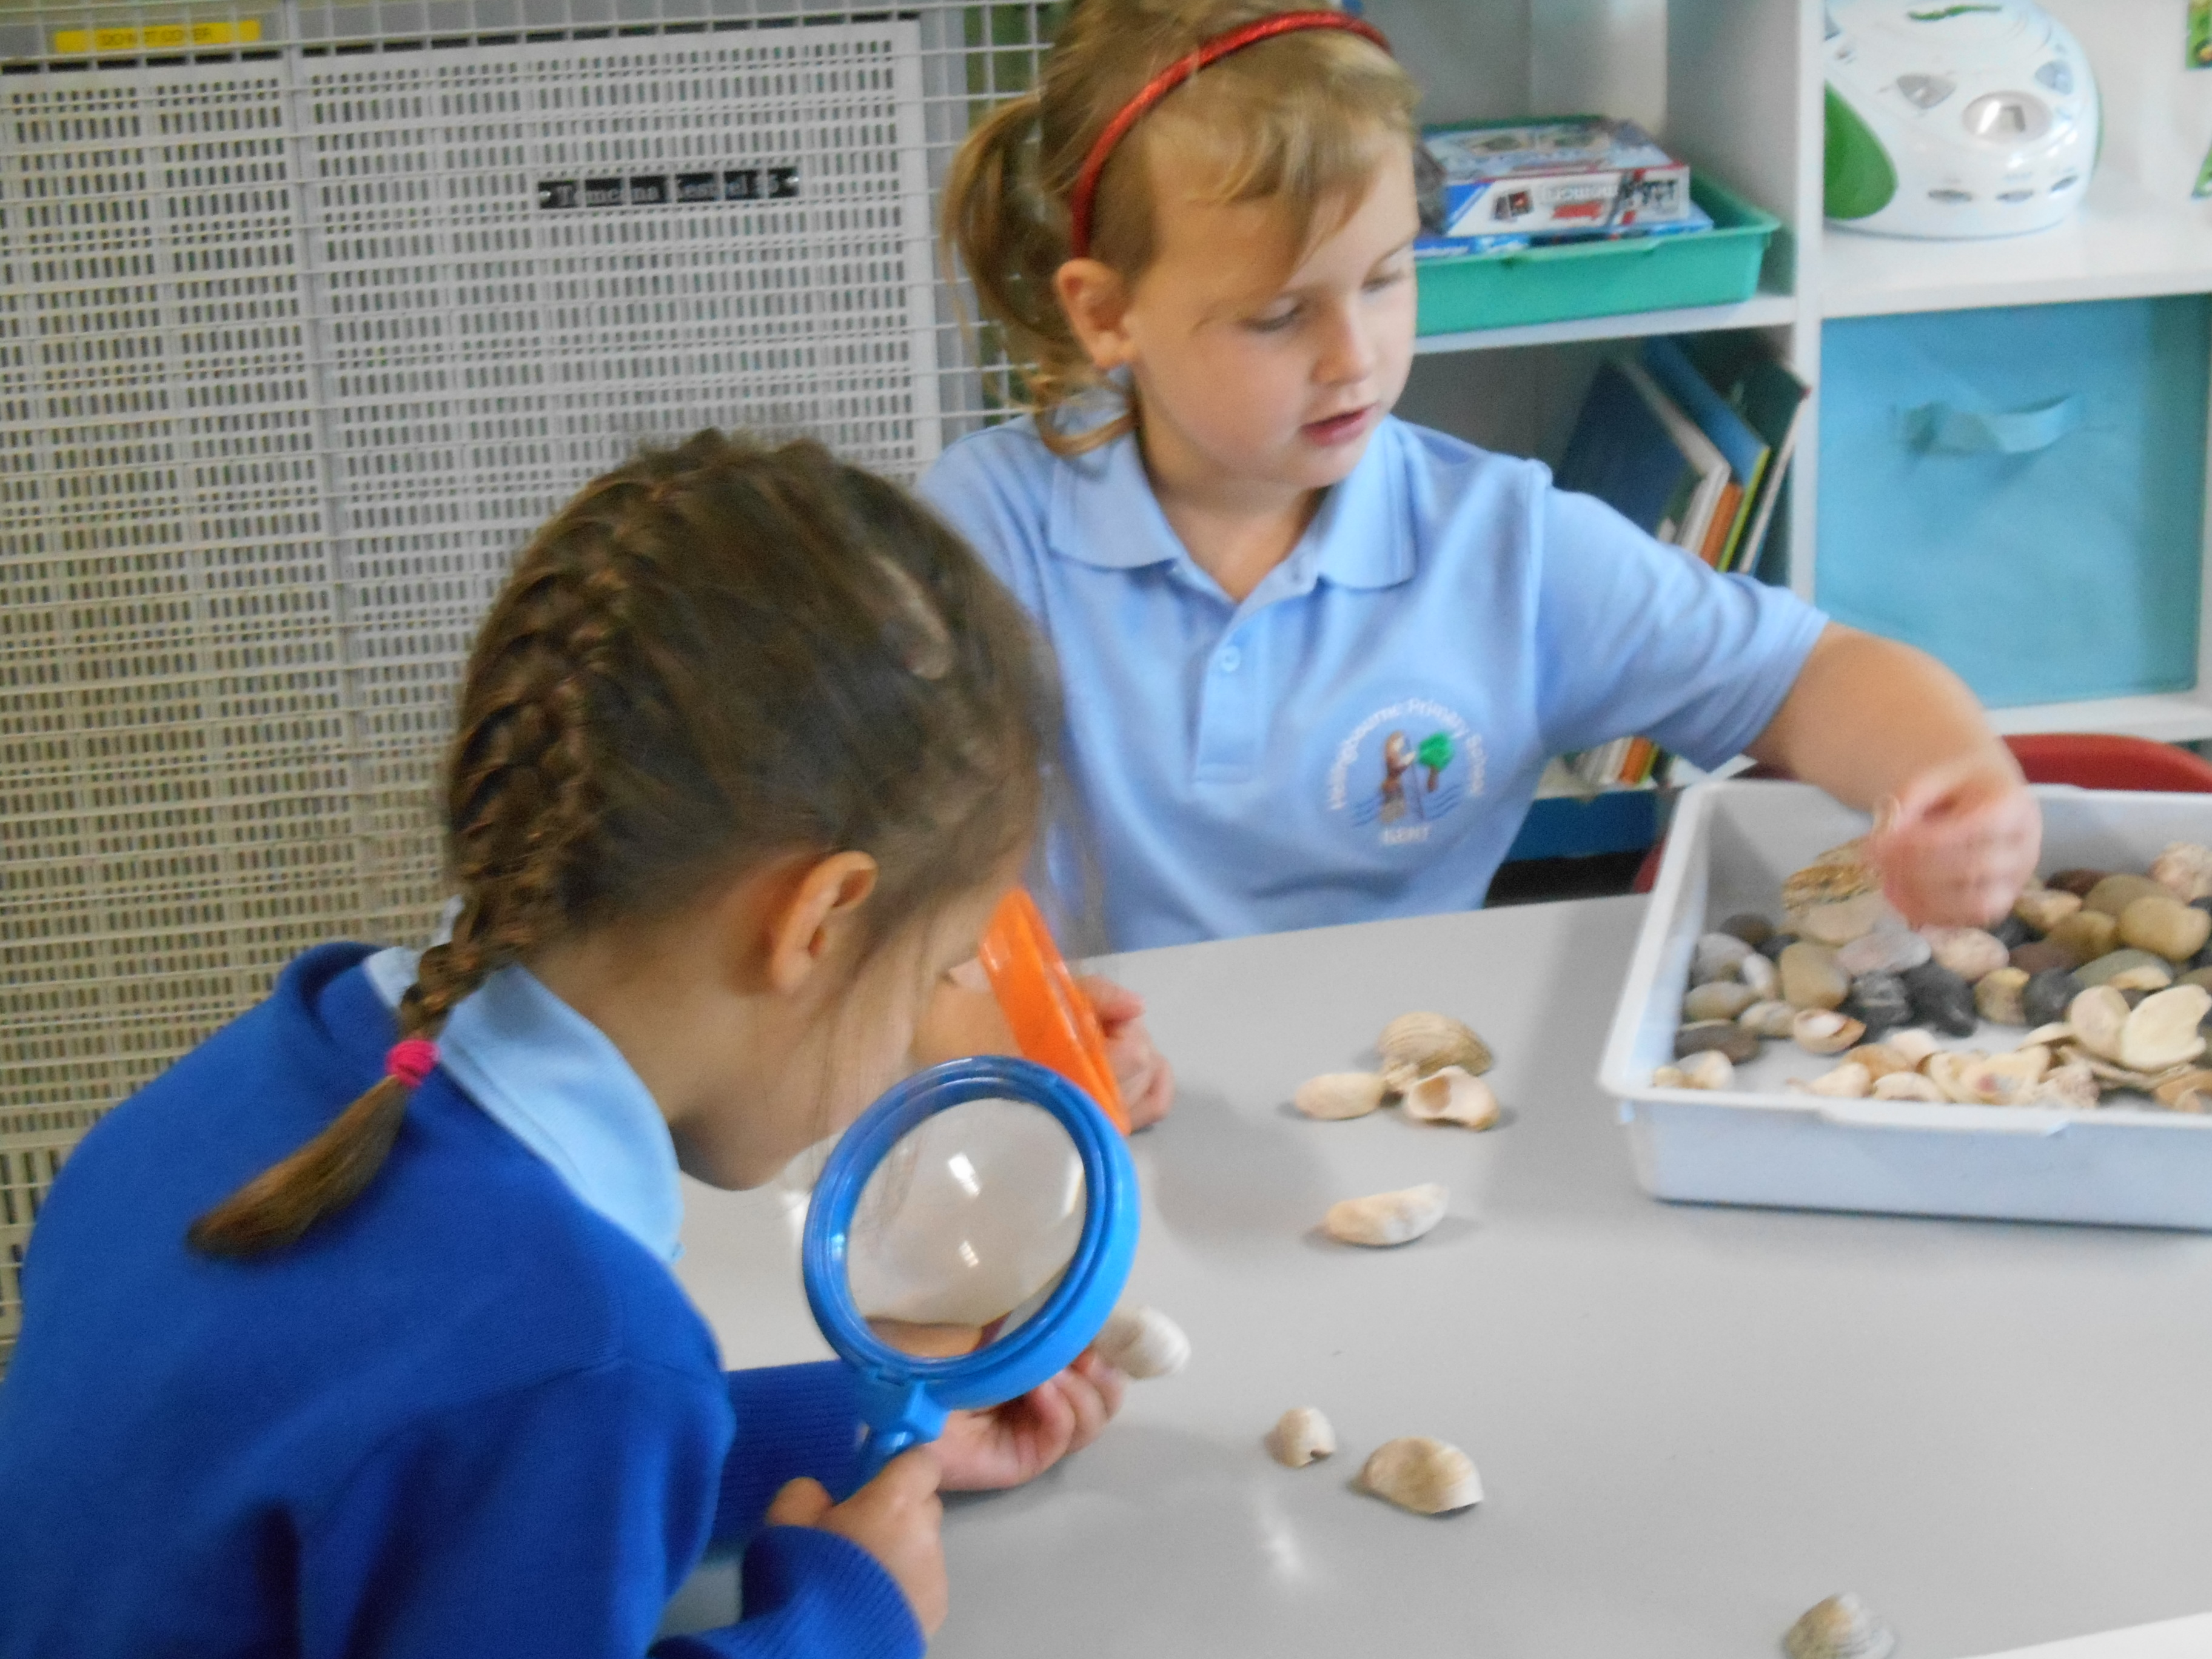 looking closely at shells and stones